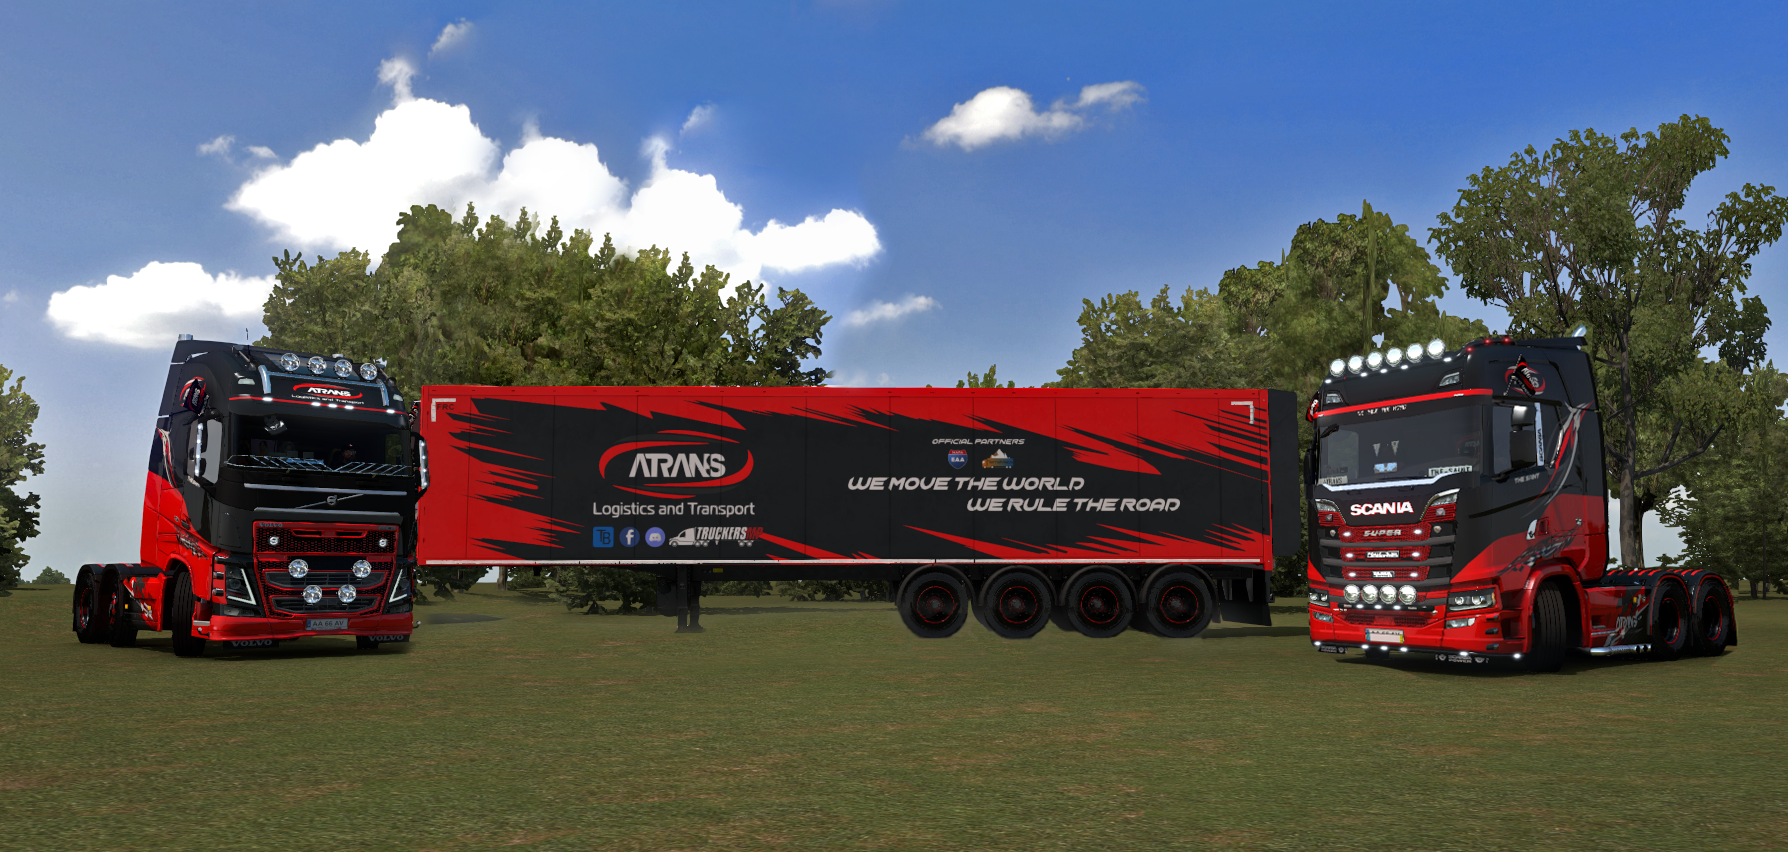 ets2_20210322_235946_00.png